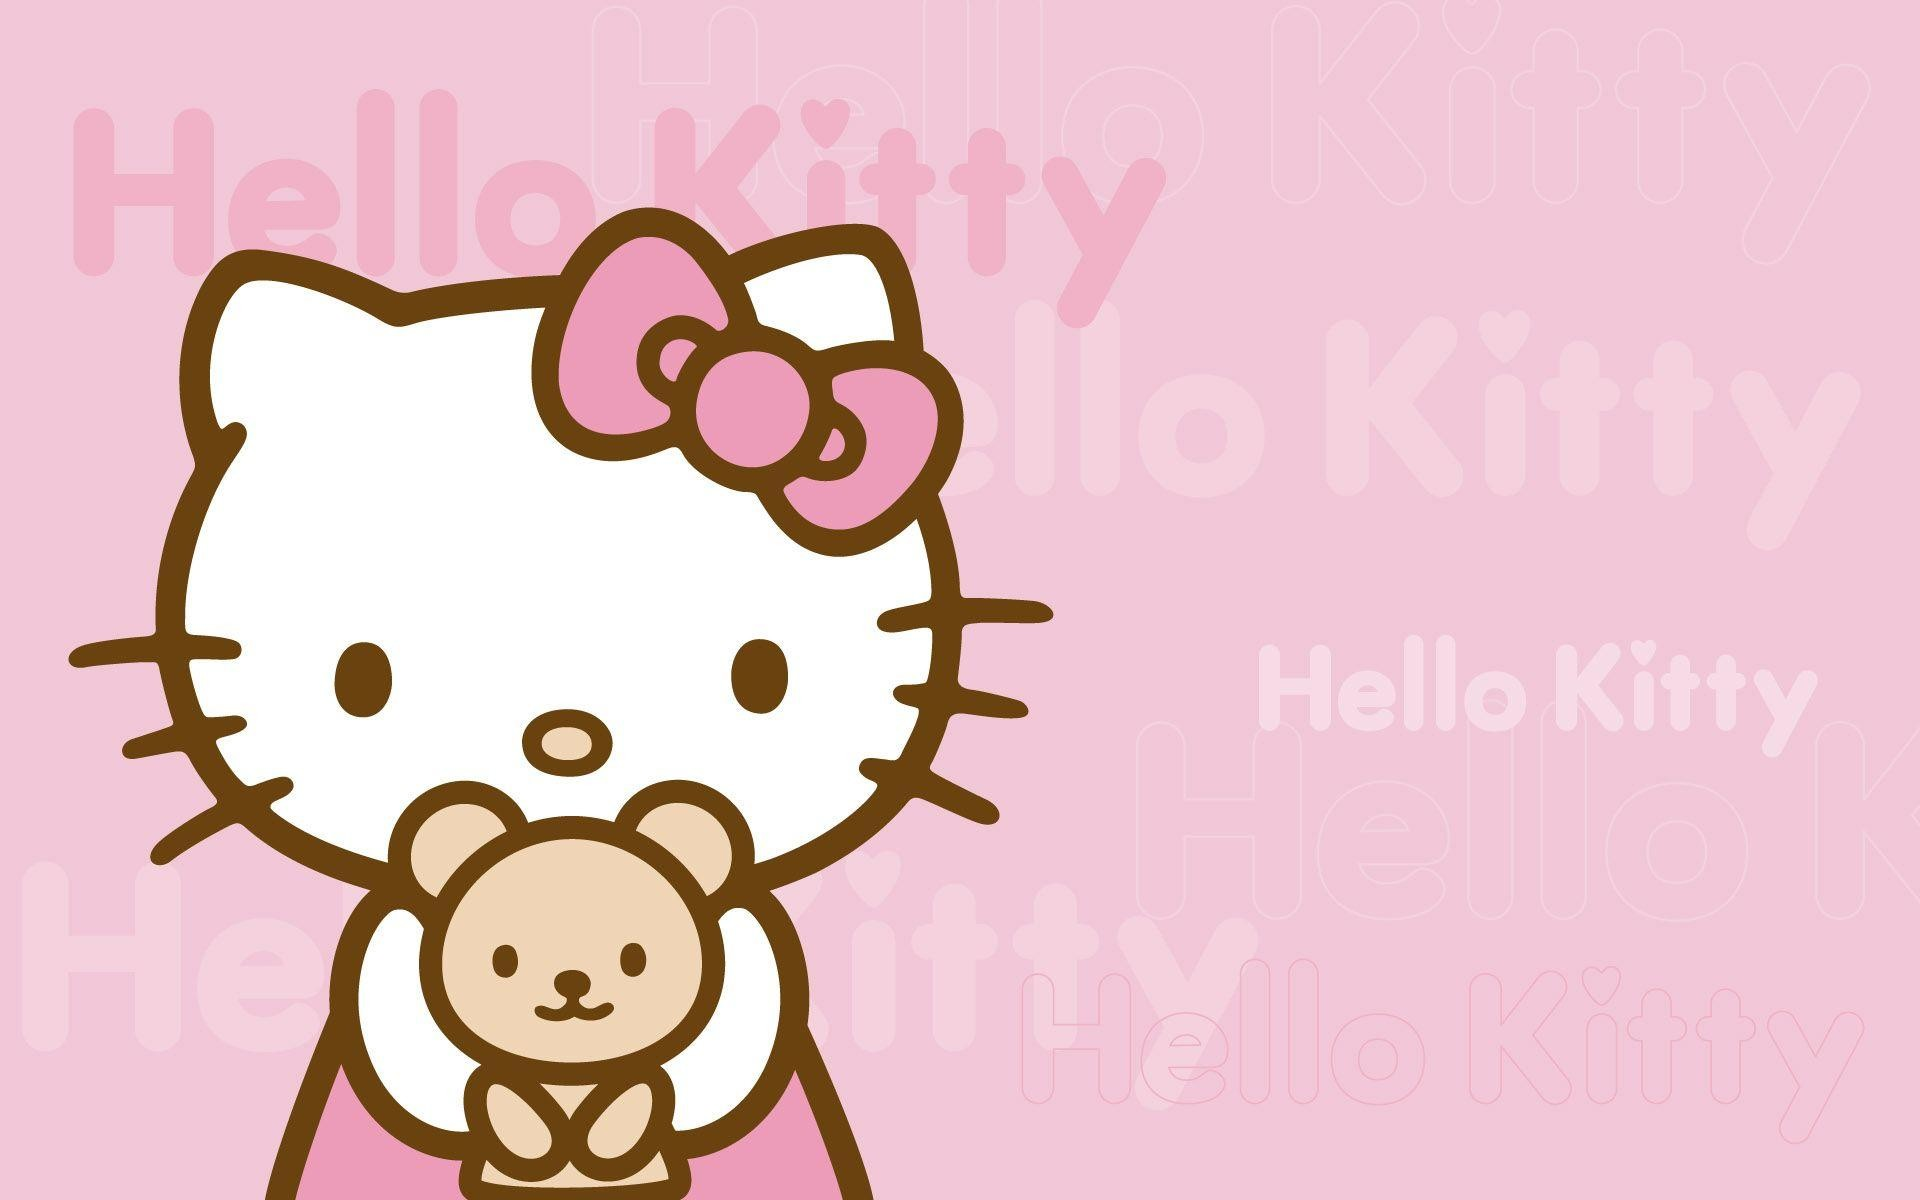 Good Wallpaper Hello Kitty Donut - 1021567-hello-kitty-wallpapers-1920x1200-for-tablet  HD_327010.jpg